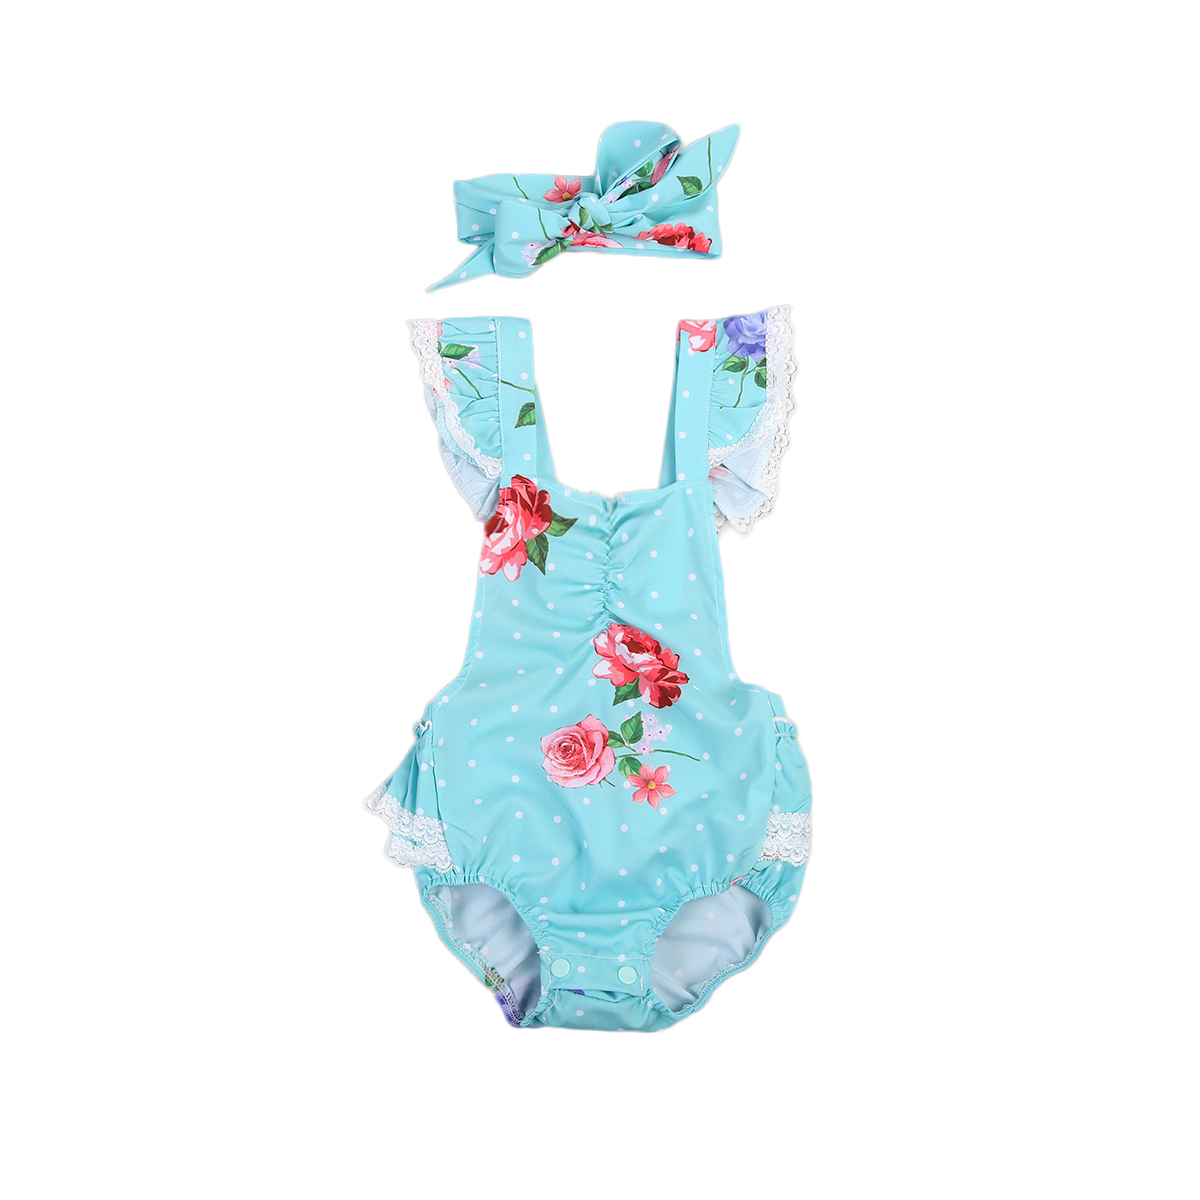 Newborn Toddler Baby Girl Clothes Lace Floral Jumpsuit One-Piece Romper Backless Sunsuit+Bow hairdband Outfits set puseky 2017 infant romper baby boys girls jumpsuit newborn bebe clothing hooded toddler baby clothes cute panda romper costumes